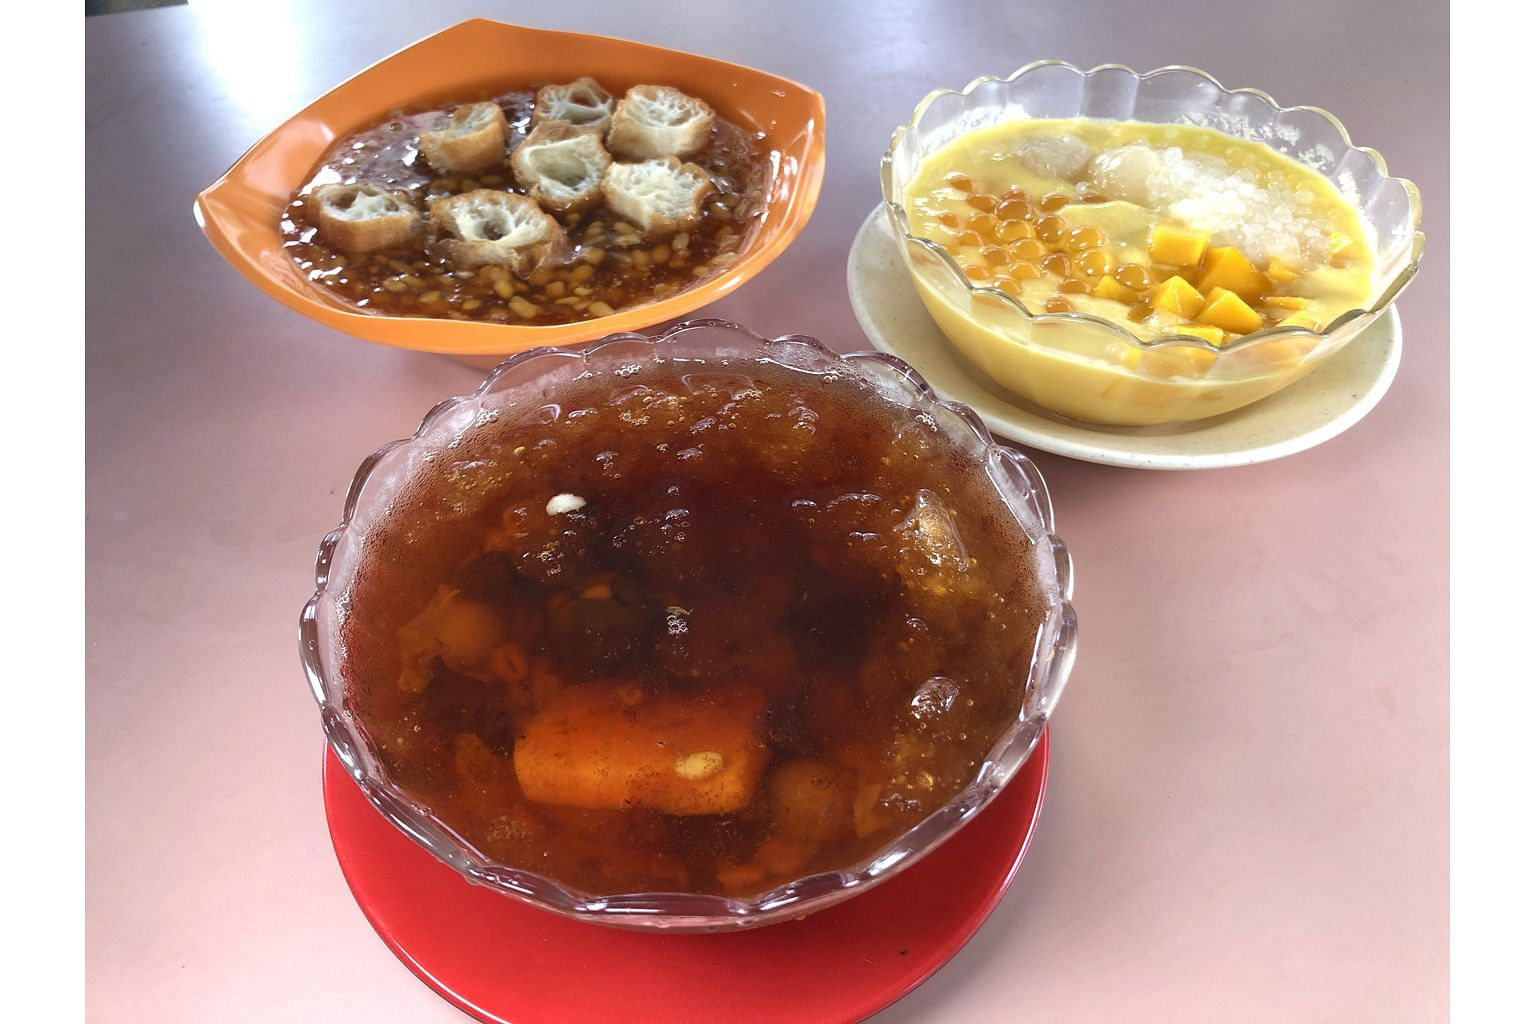 Shirley Jie Desserts offers value for money with its (clockwise, from top left) tau suan, mango sago and cheng tng.